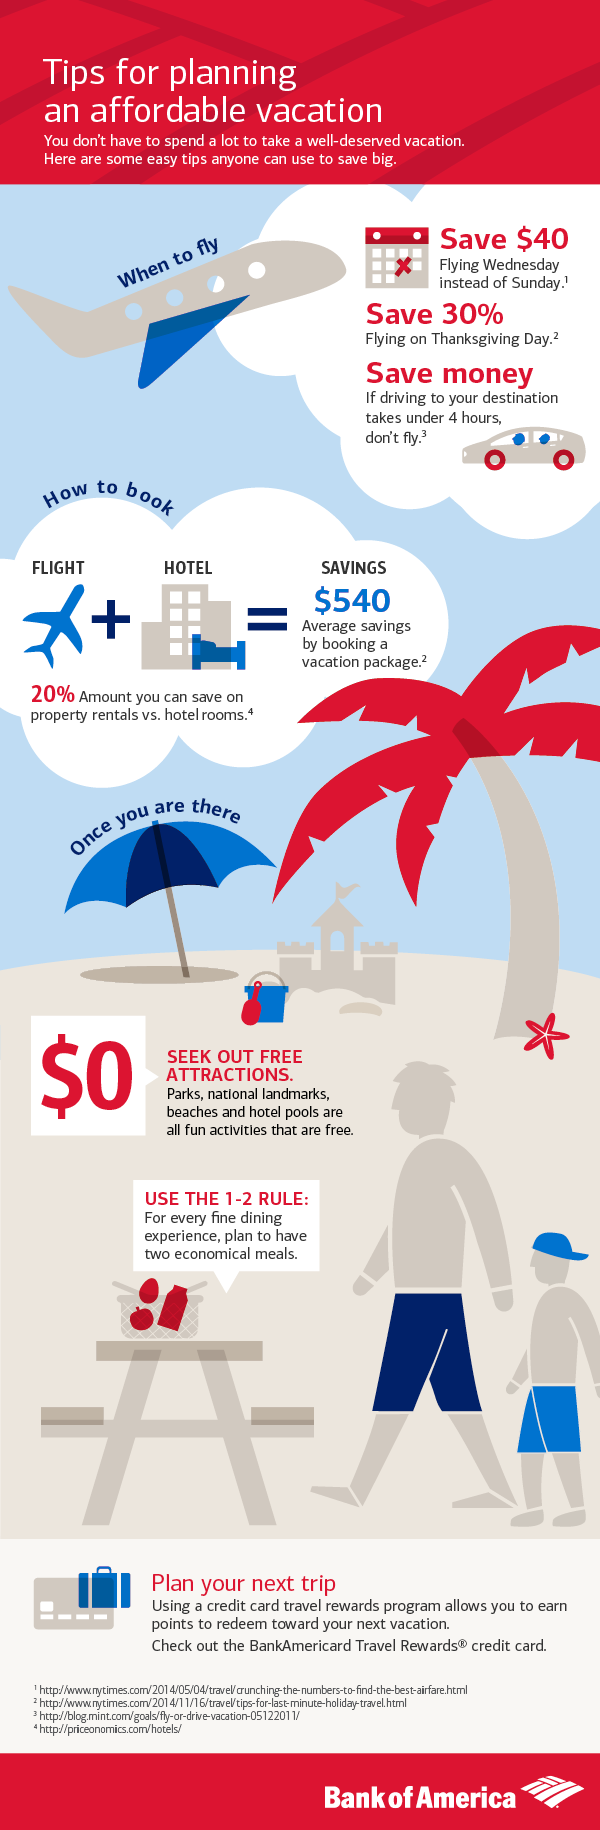 How to access and help protect your money on vacation